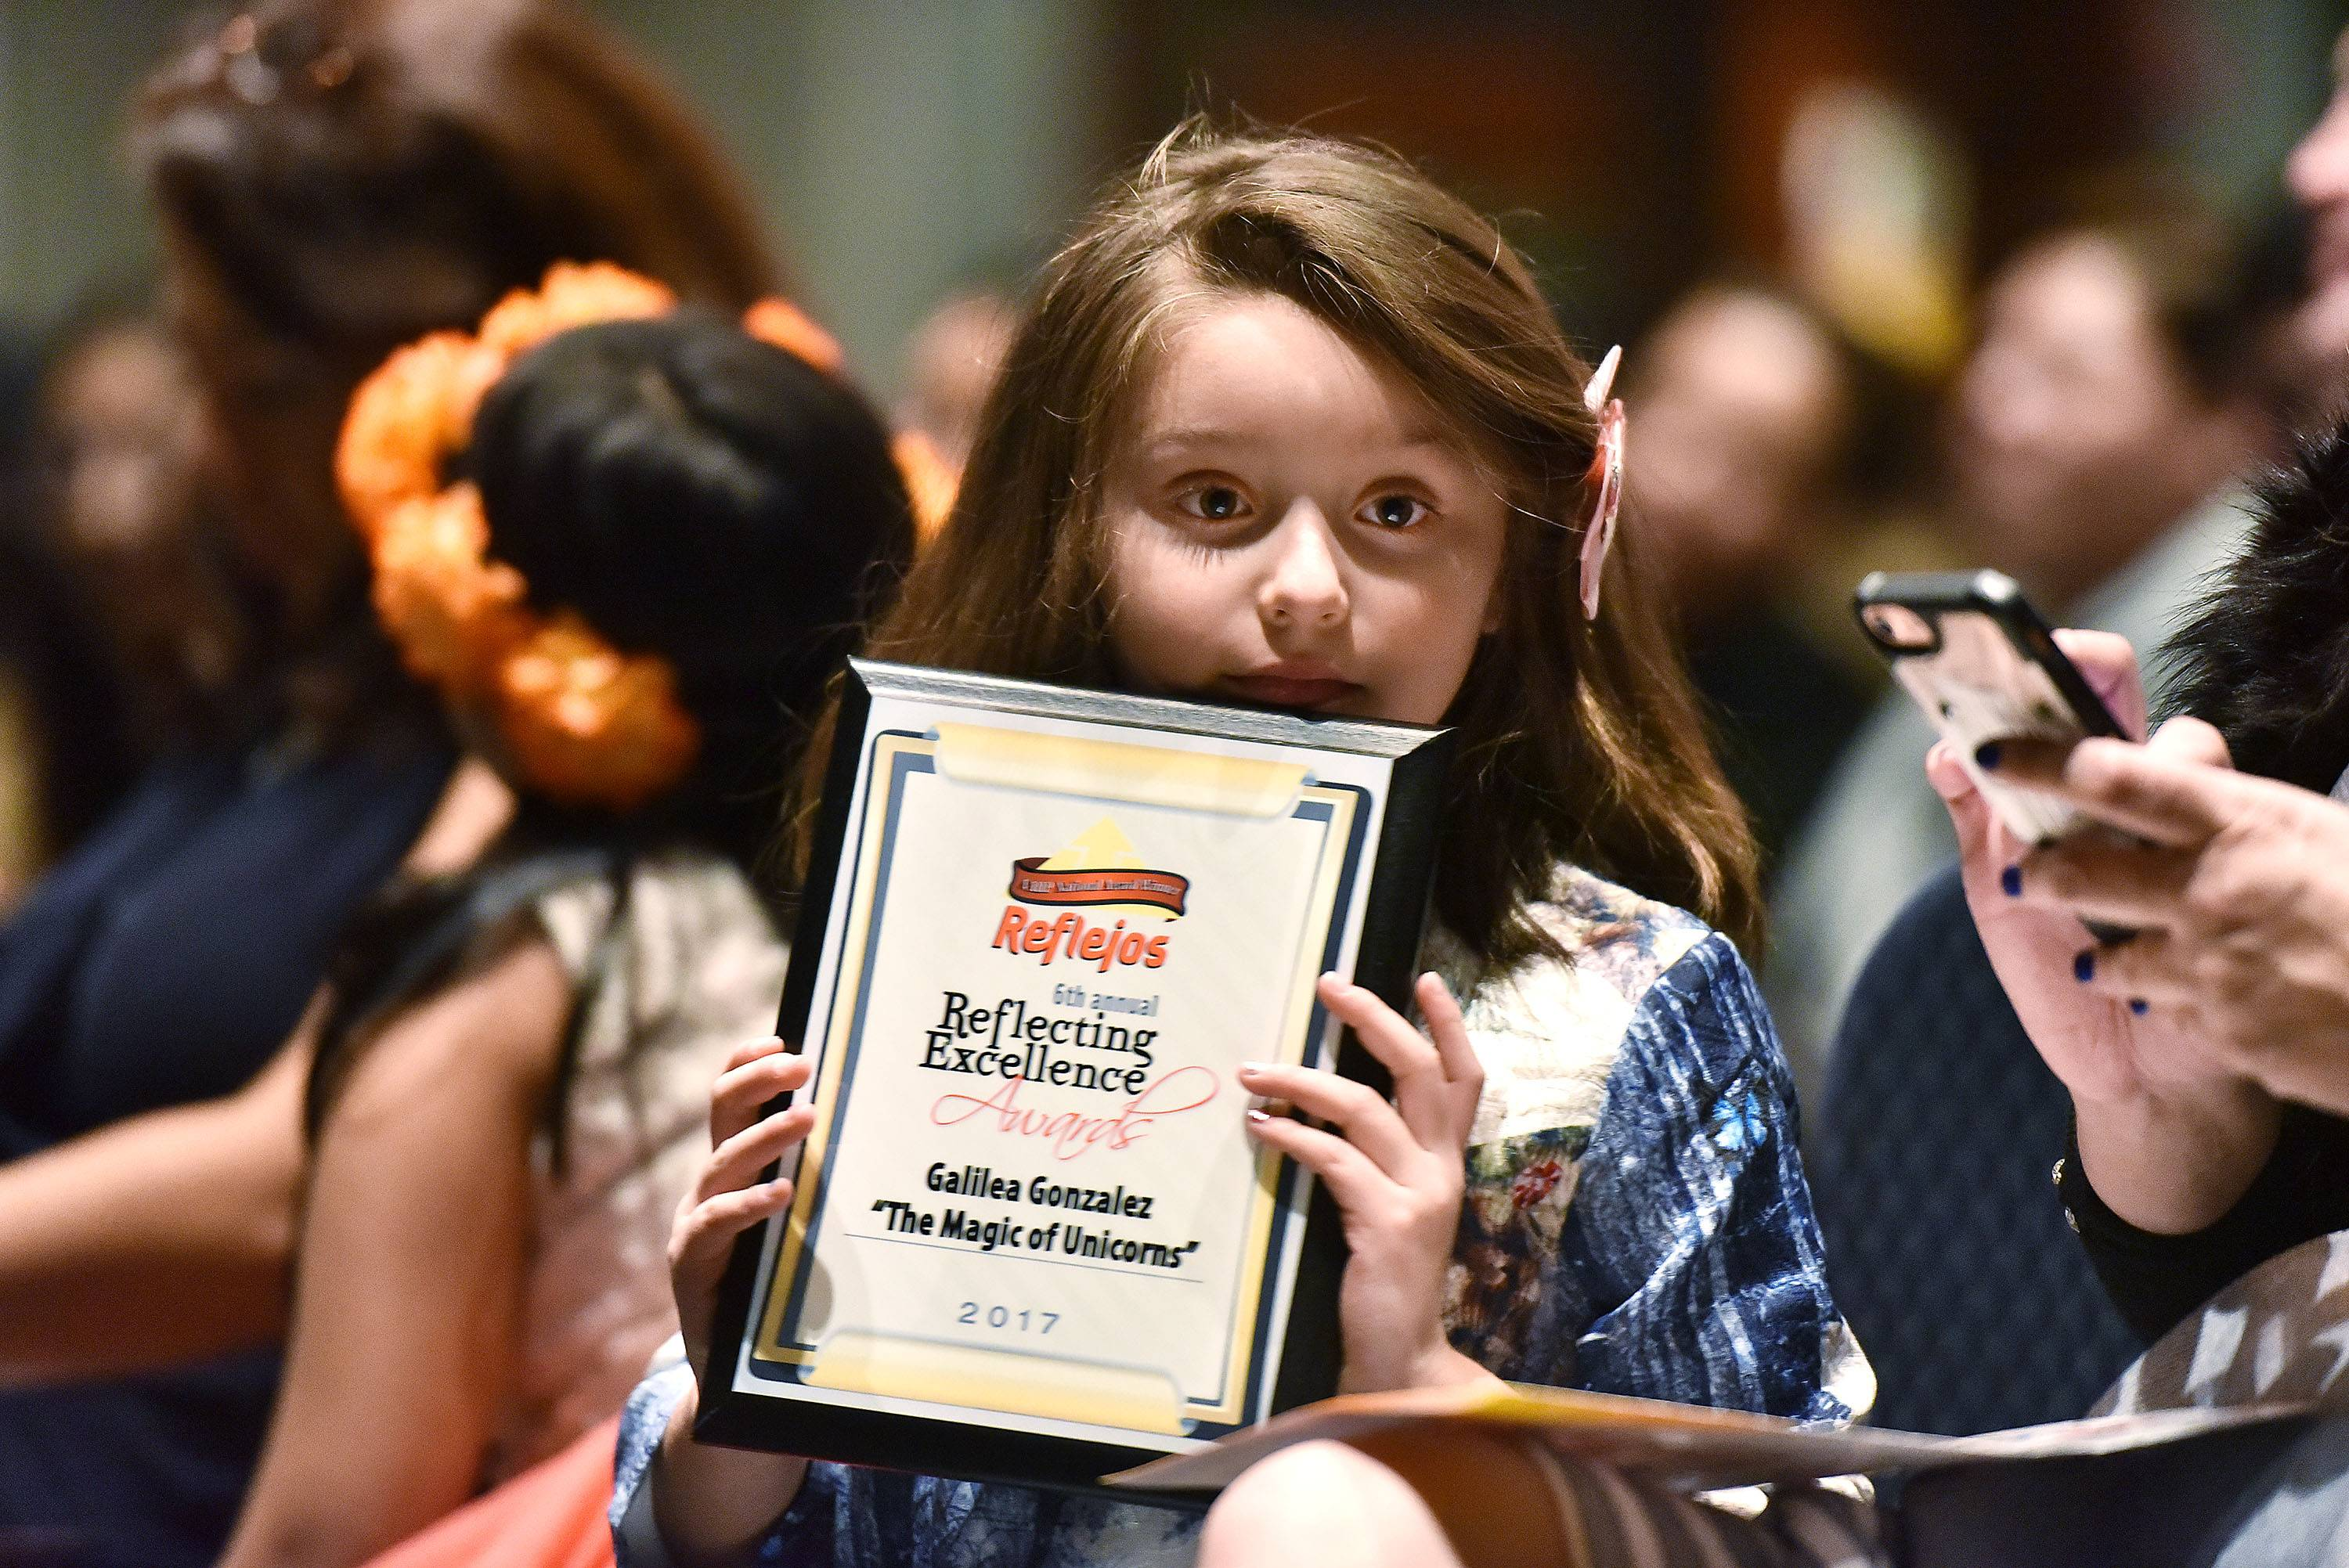 Galilea Gonzalez, 8, of Des Plaines, gets a round of applause Wednesday at Reflejos' Reflecting Excellence Awards at the Stonegate Conference and Banquet Centre in Hoffman Estates. She received a surprise award for her efforts to donate stuffed unicorns to children with cancer.